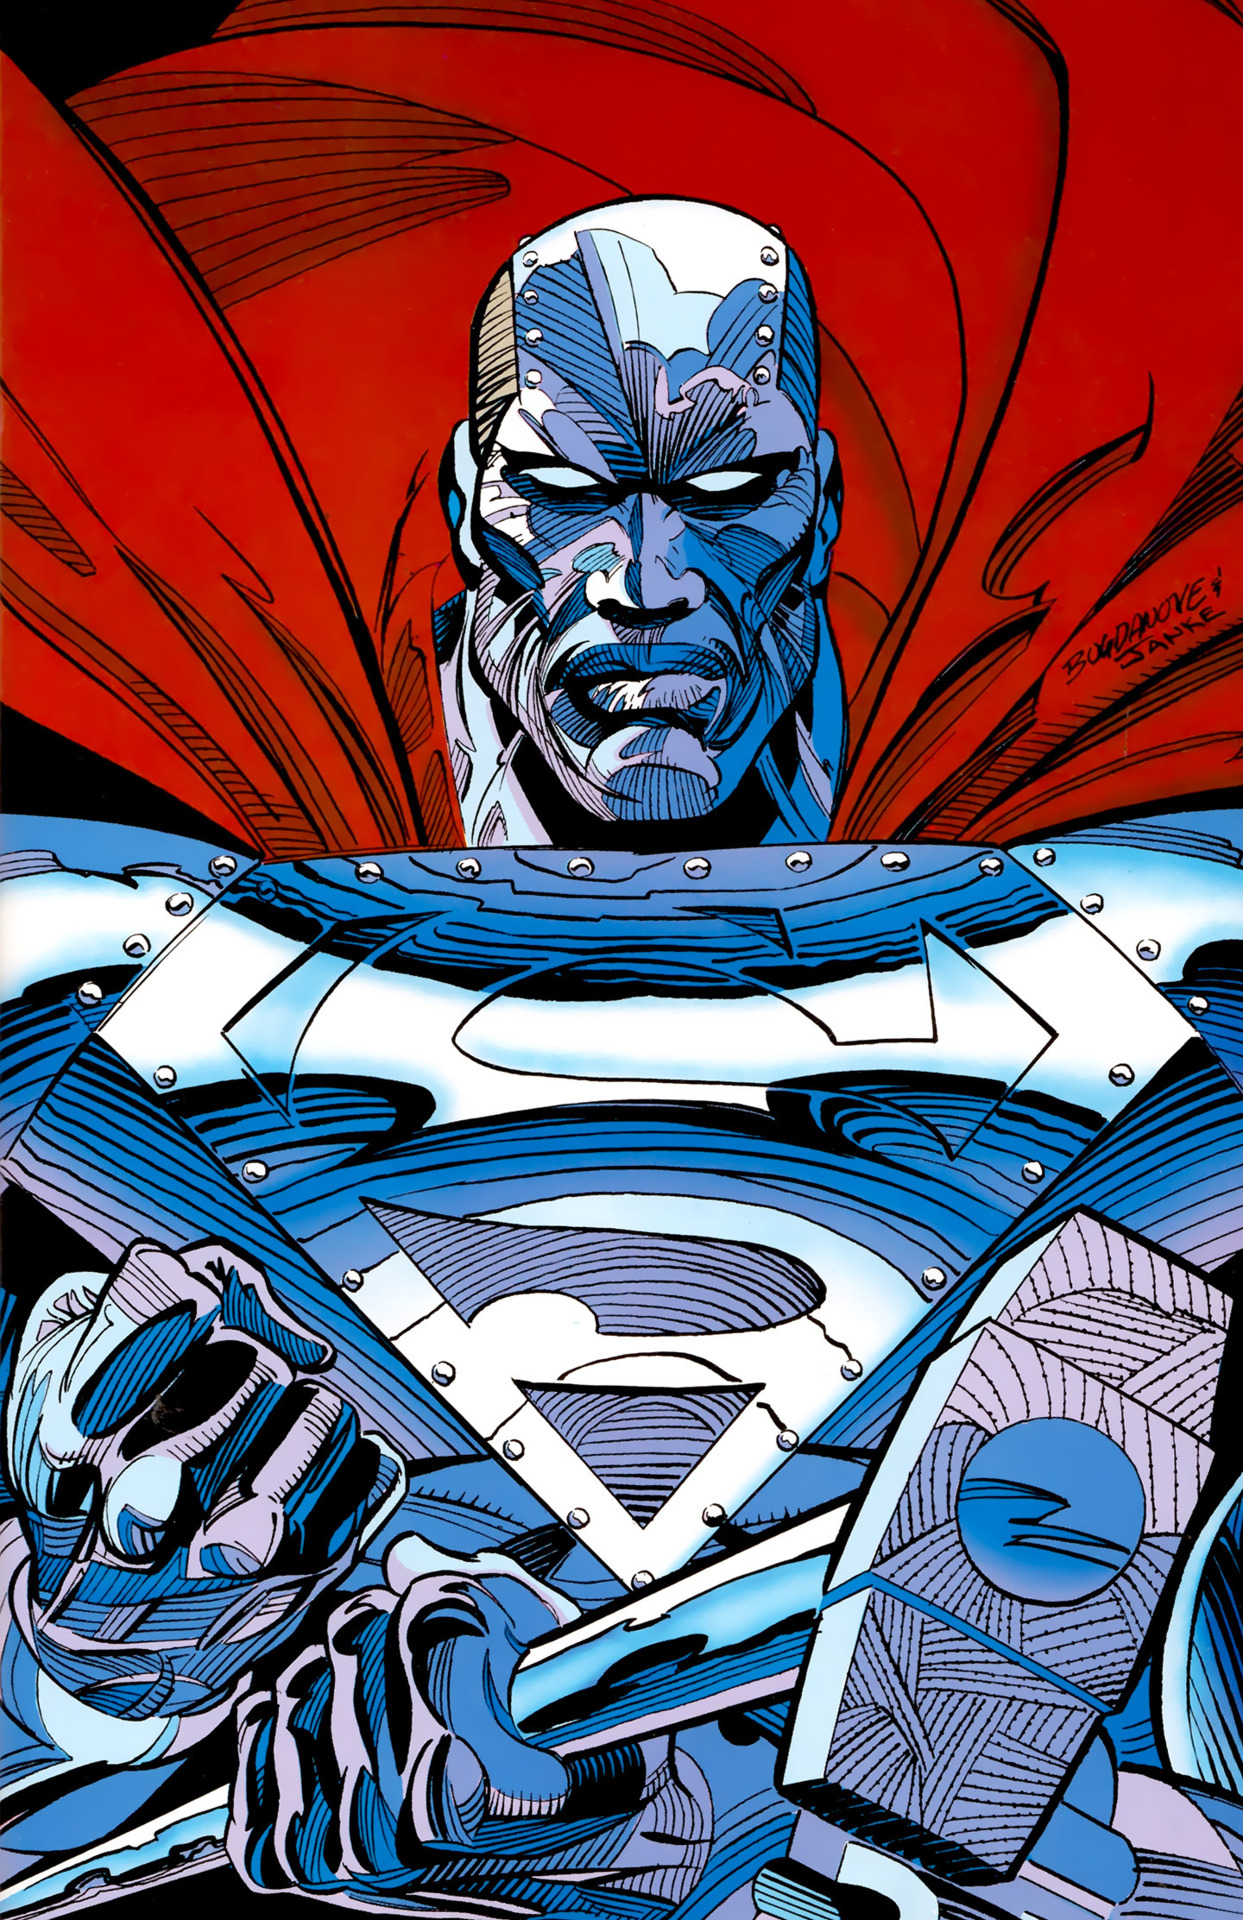 Metal Superman with a hammer and African American facial features